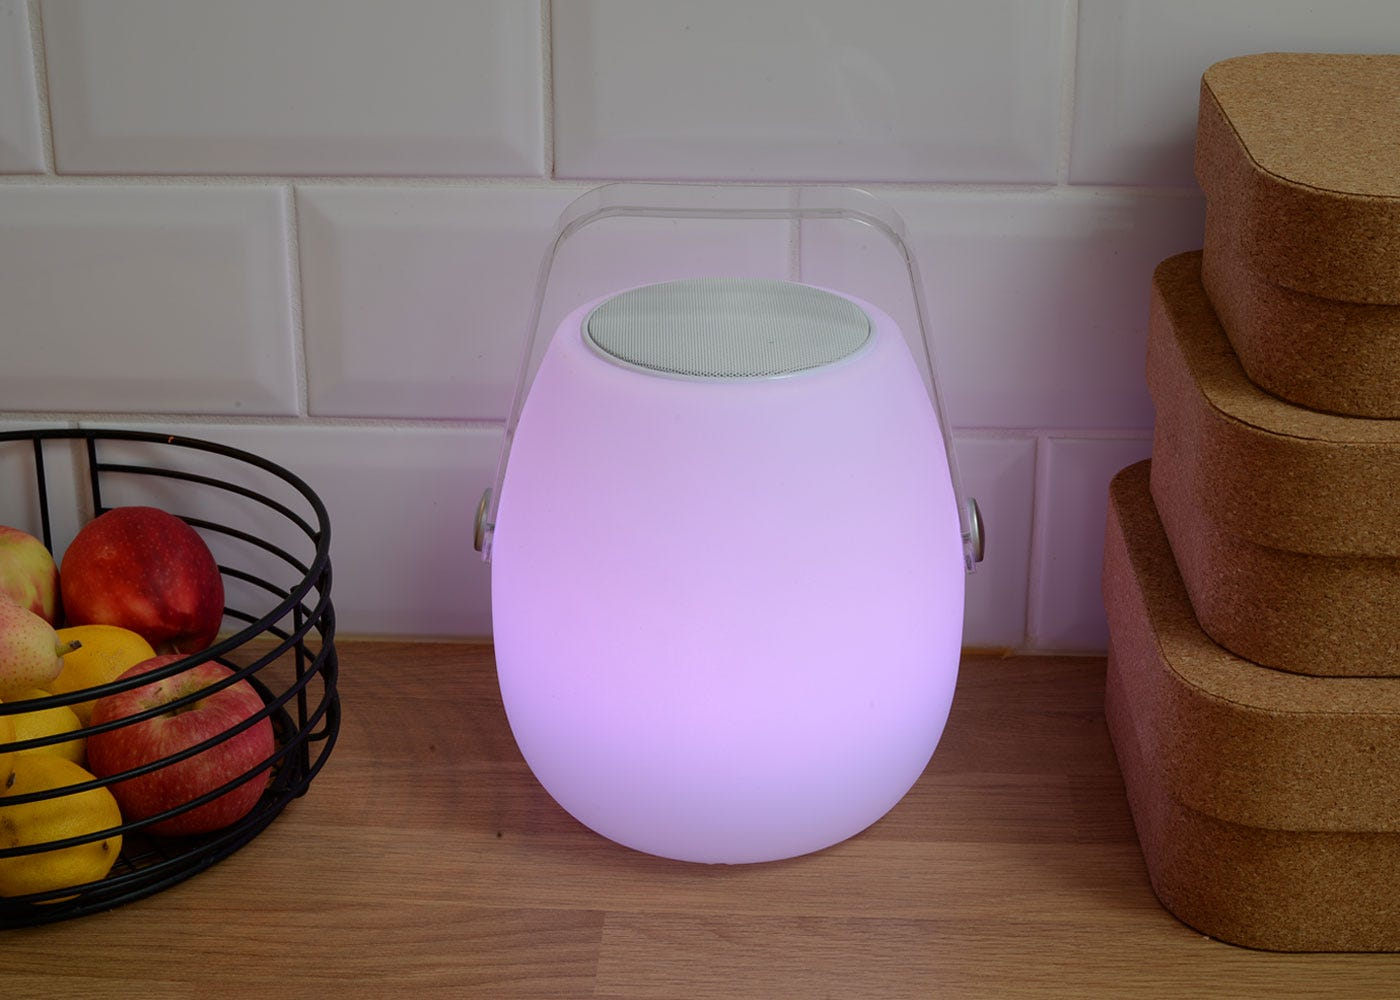 As shown: Ava portable speaker with the pink option on.